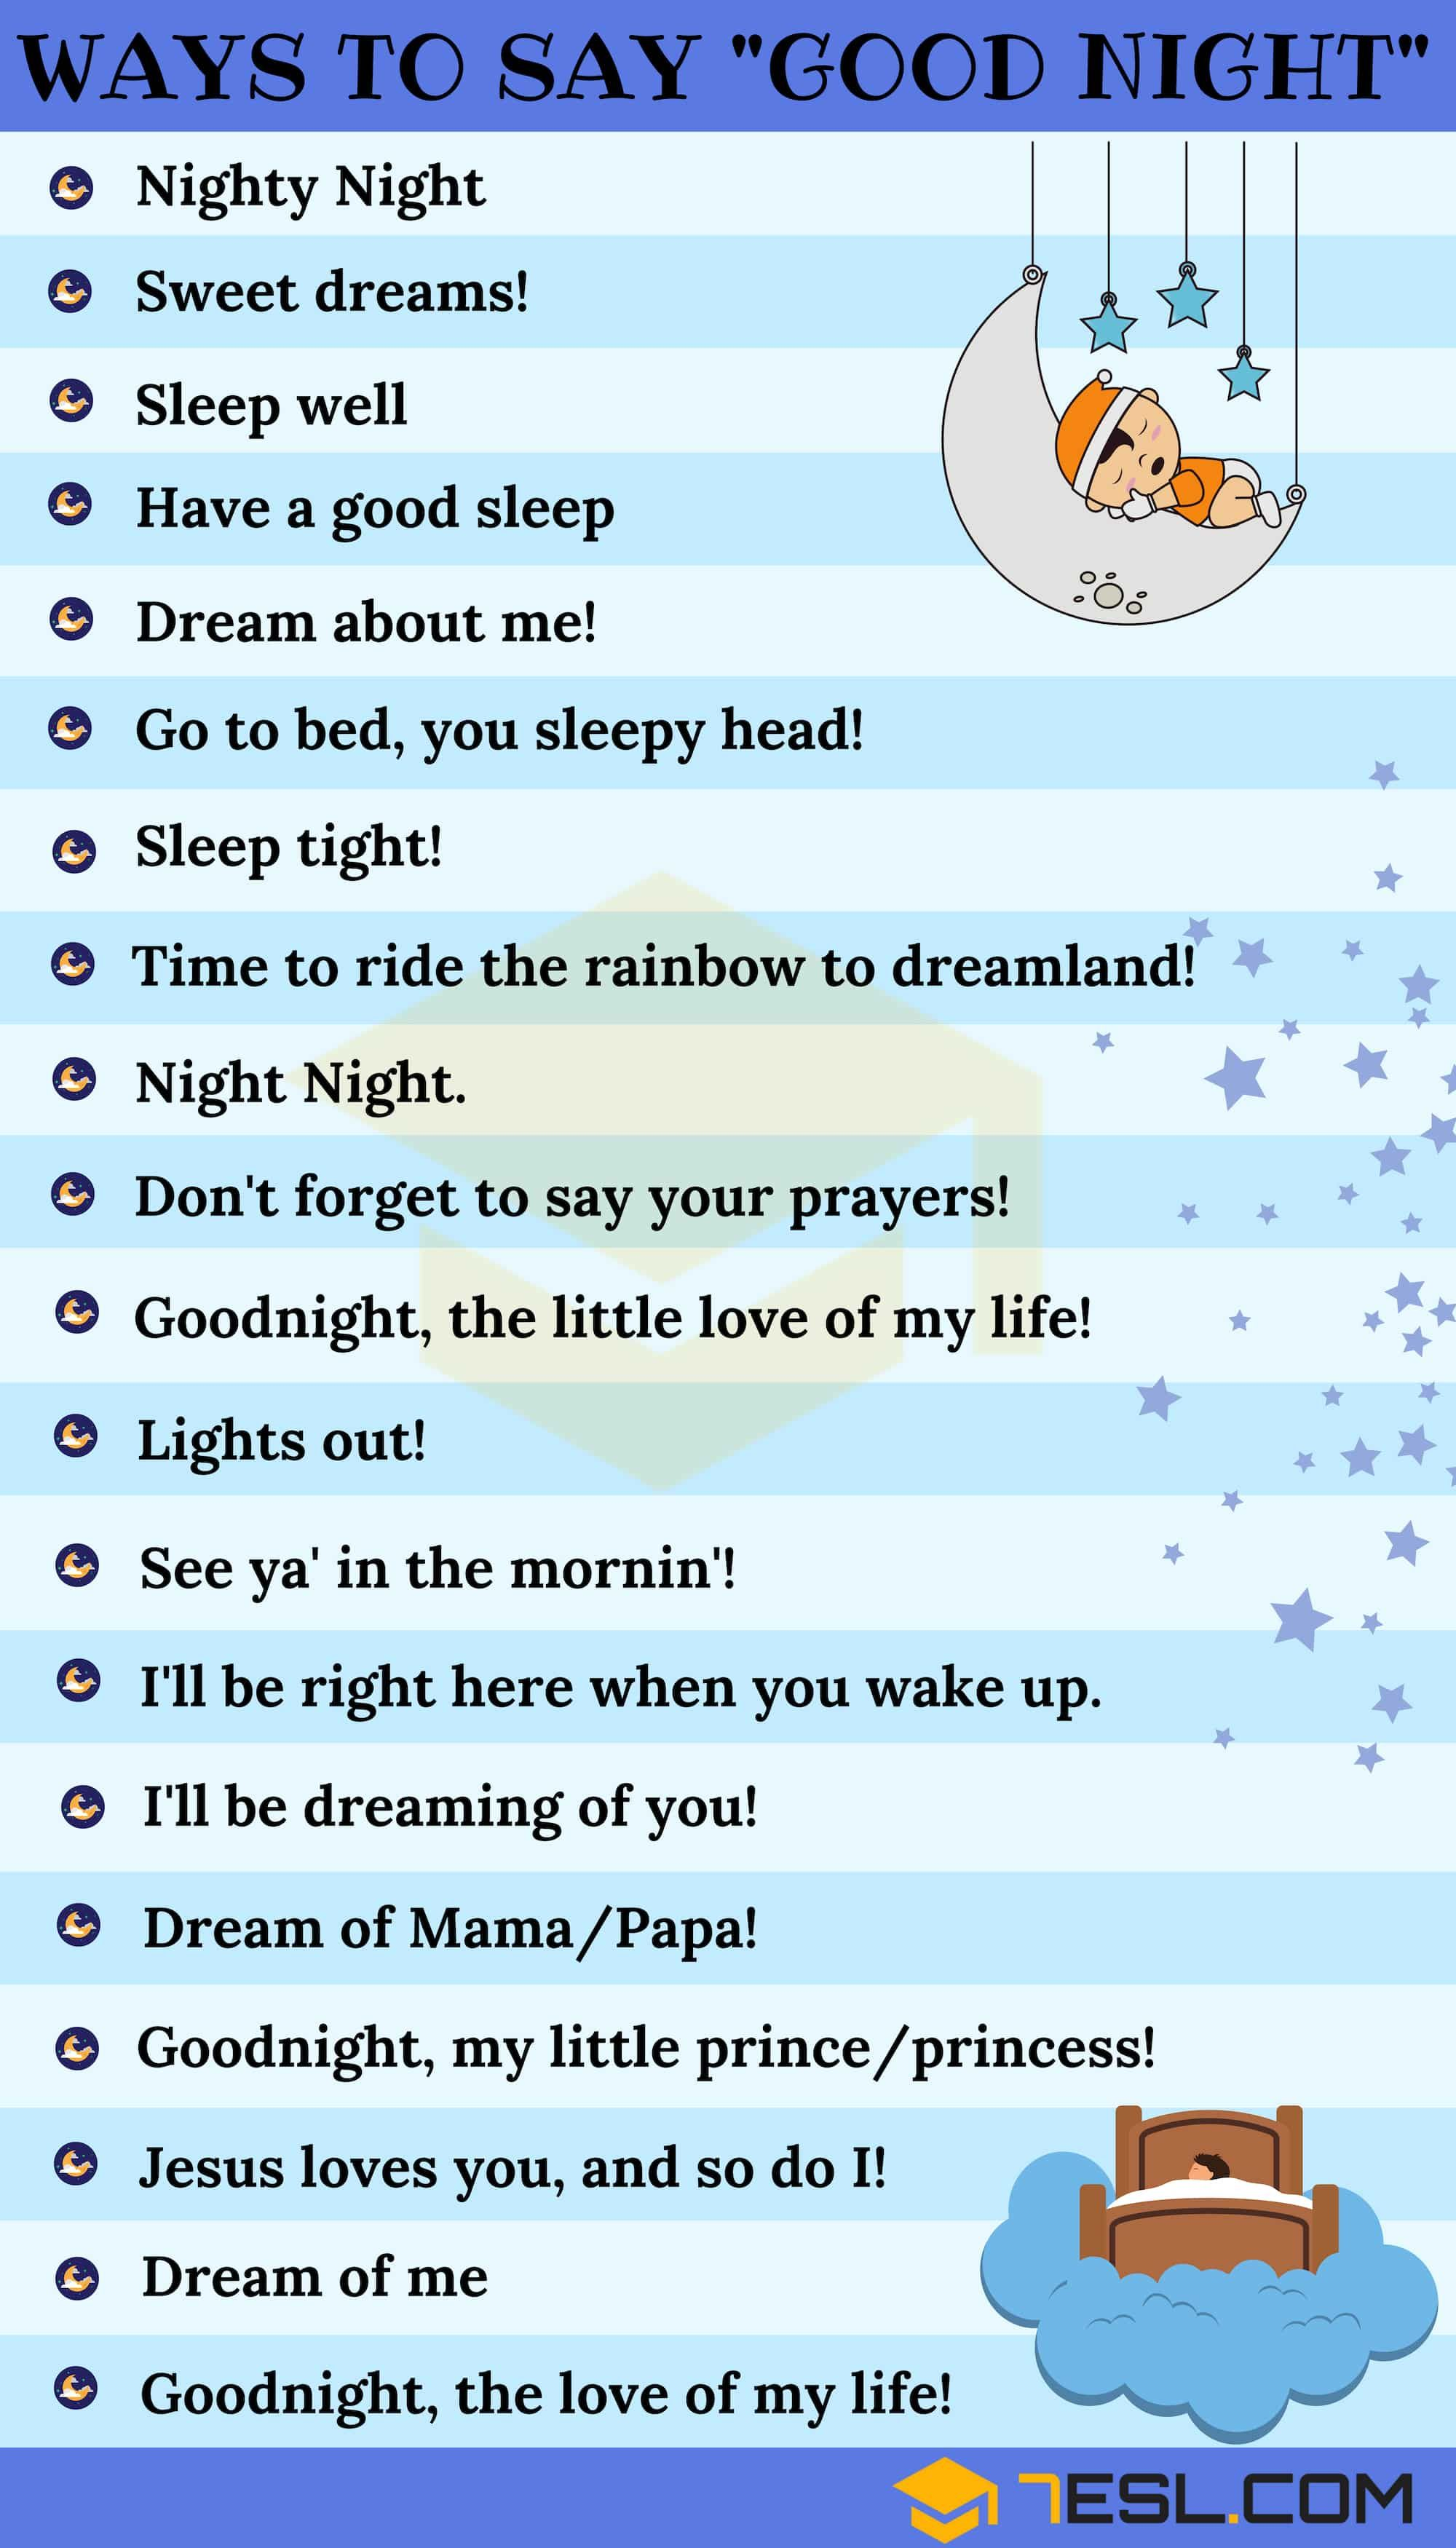 Cute Ways To Say Good Night Best Alternatives To Have A Good Night 7esl Learn English Words Learn English Vocabulary English Vocabulary Words